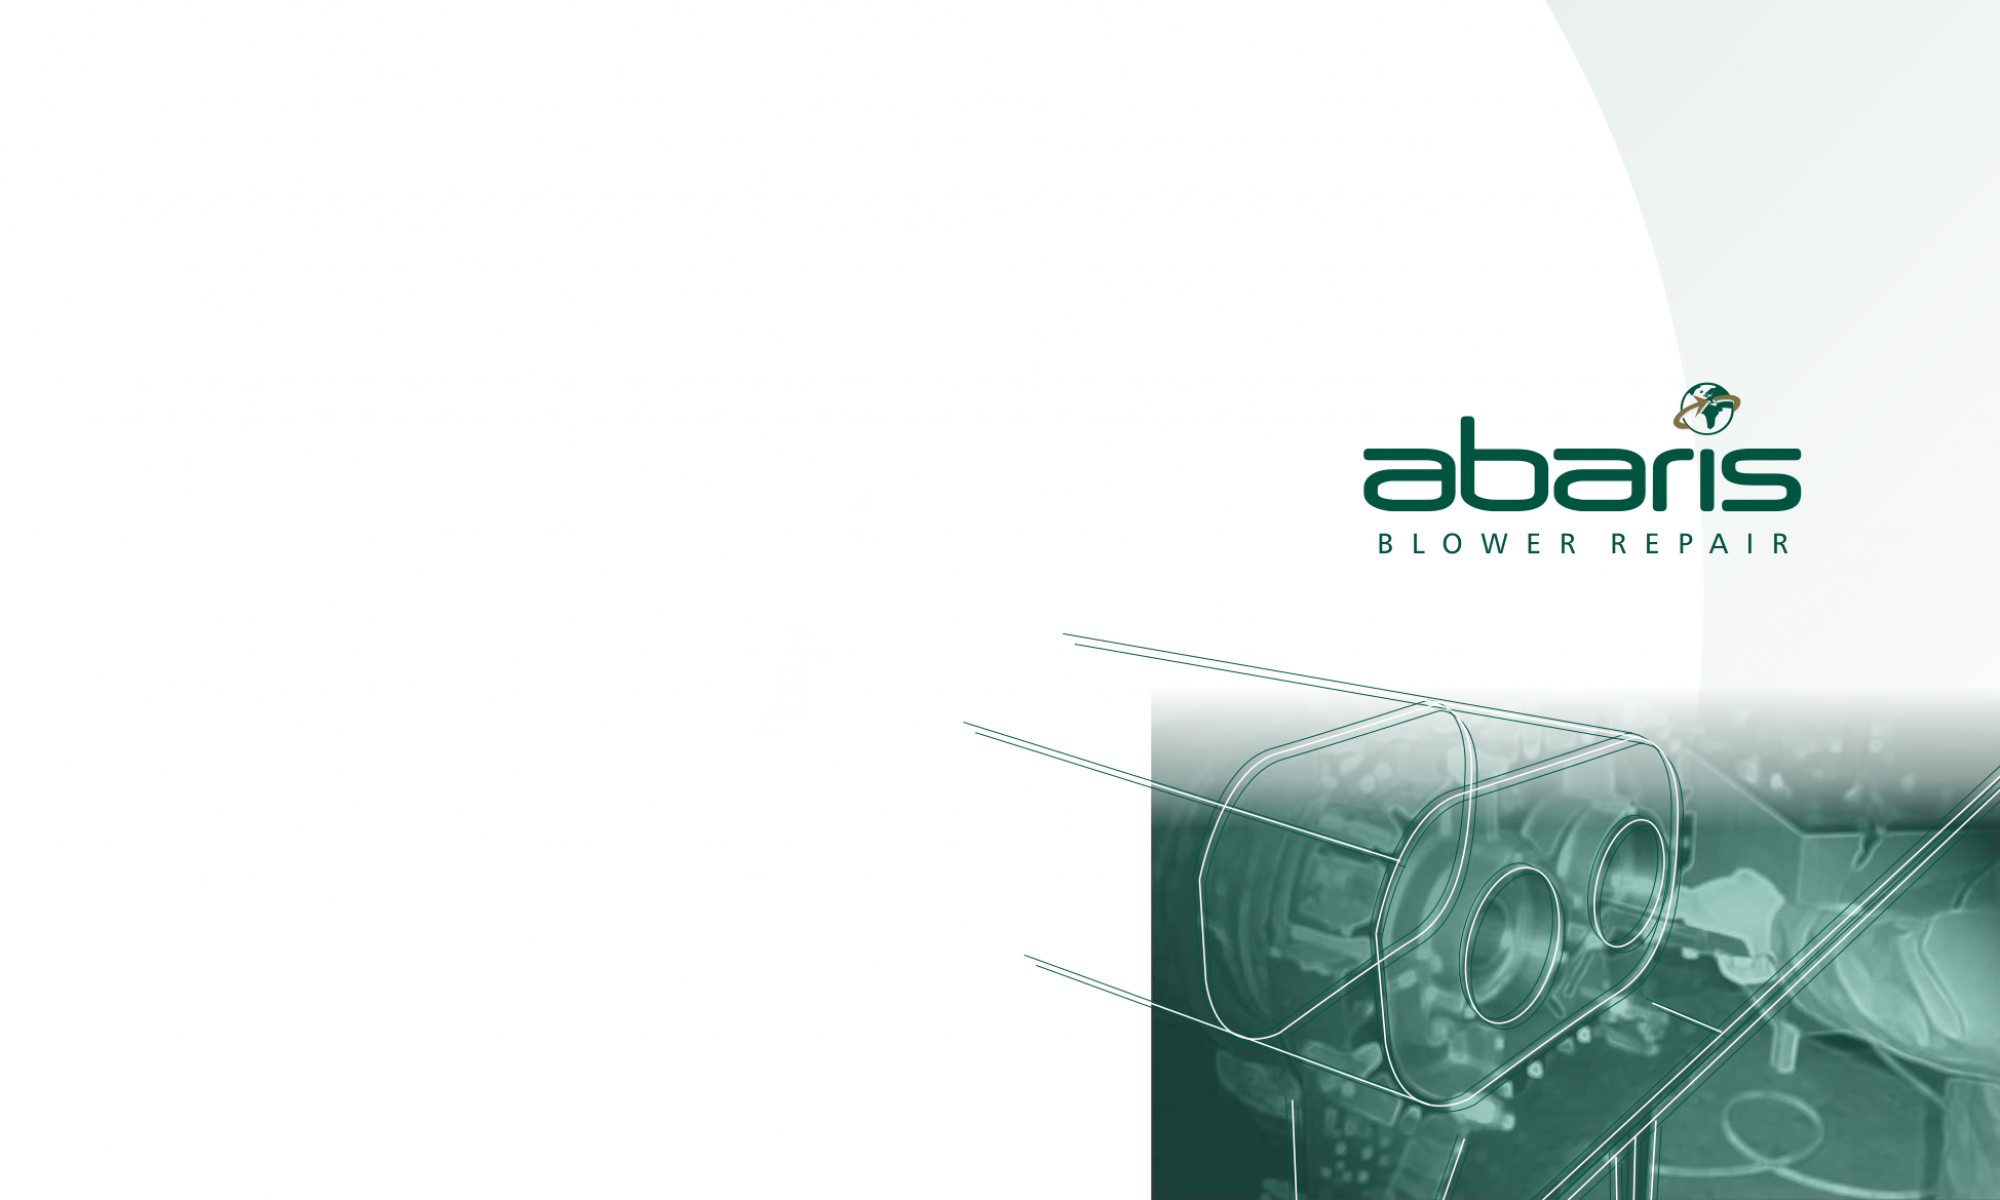 Abaris Blower Repair